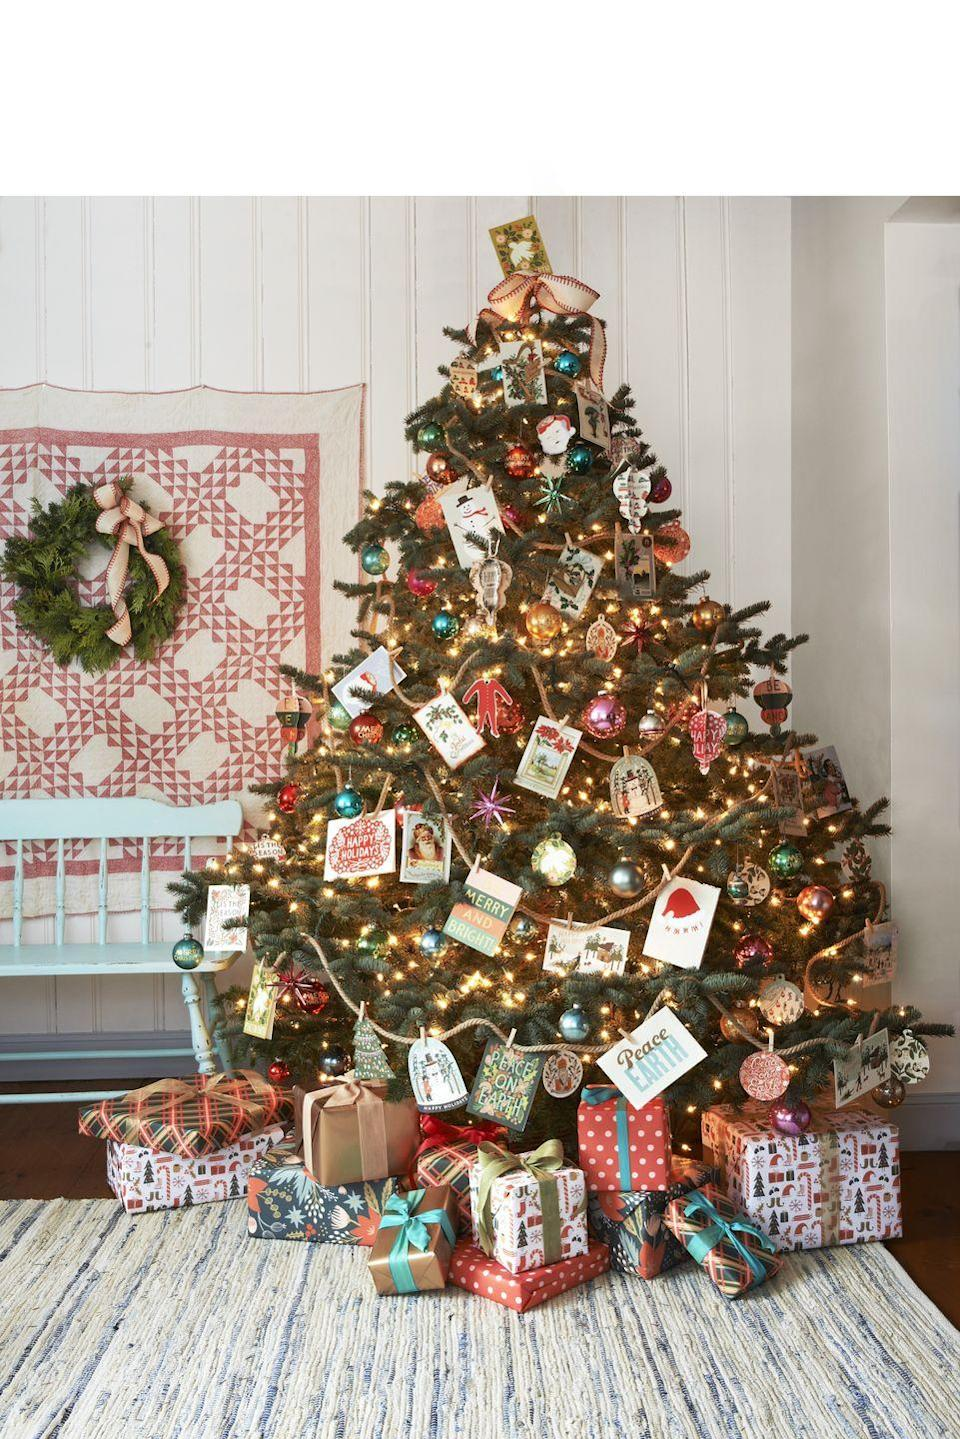 """<p>Get the softness of ribbon with a little less fuss by using jute rope for your garland. Add even more personality by hanging holiday greeting cards to the rope using mini clothespins.</p><p><a class=""""link rapid-noclick-resp"""" href=""""https://www.amazon.com/Tenn-Well-Gardening-Bundling-Decorating/dp/B077Z3XBWR/ref=sr_1_10?tag=syn-yahoo-20&ascsubtag=%5Bartid%7C10050.g.28703522%5Bsrc%7Cyahoo-us"""" rel=""""nofollow noopener"""" target=""""_blank"""" data-ylk=""""slk:SHOP JUTE ROPE"""">SHOP JUTE ROPE</a> </p>"""